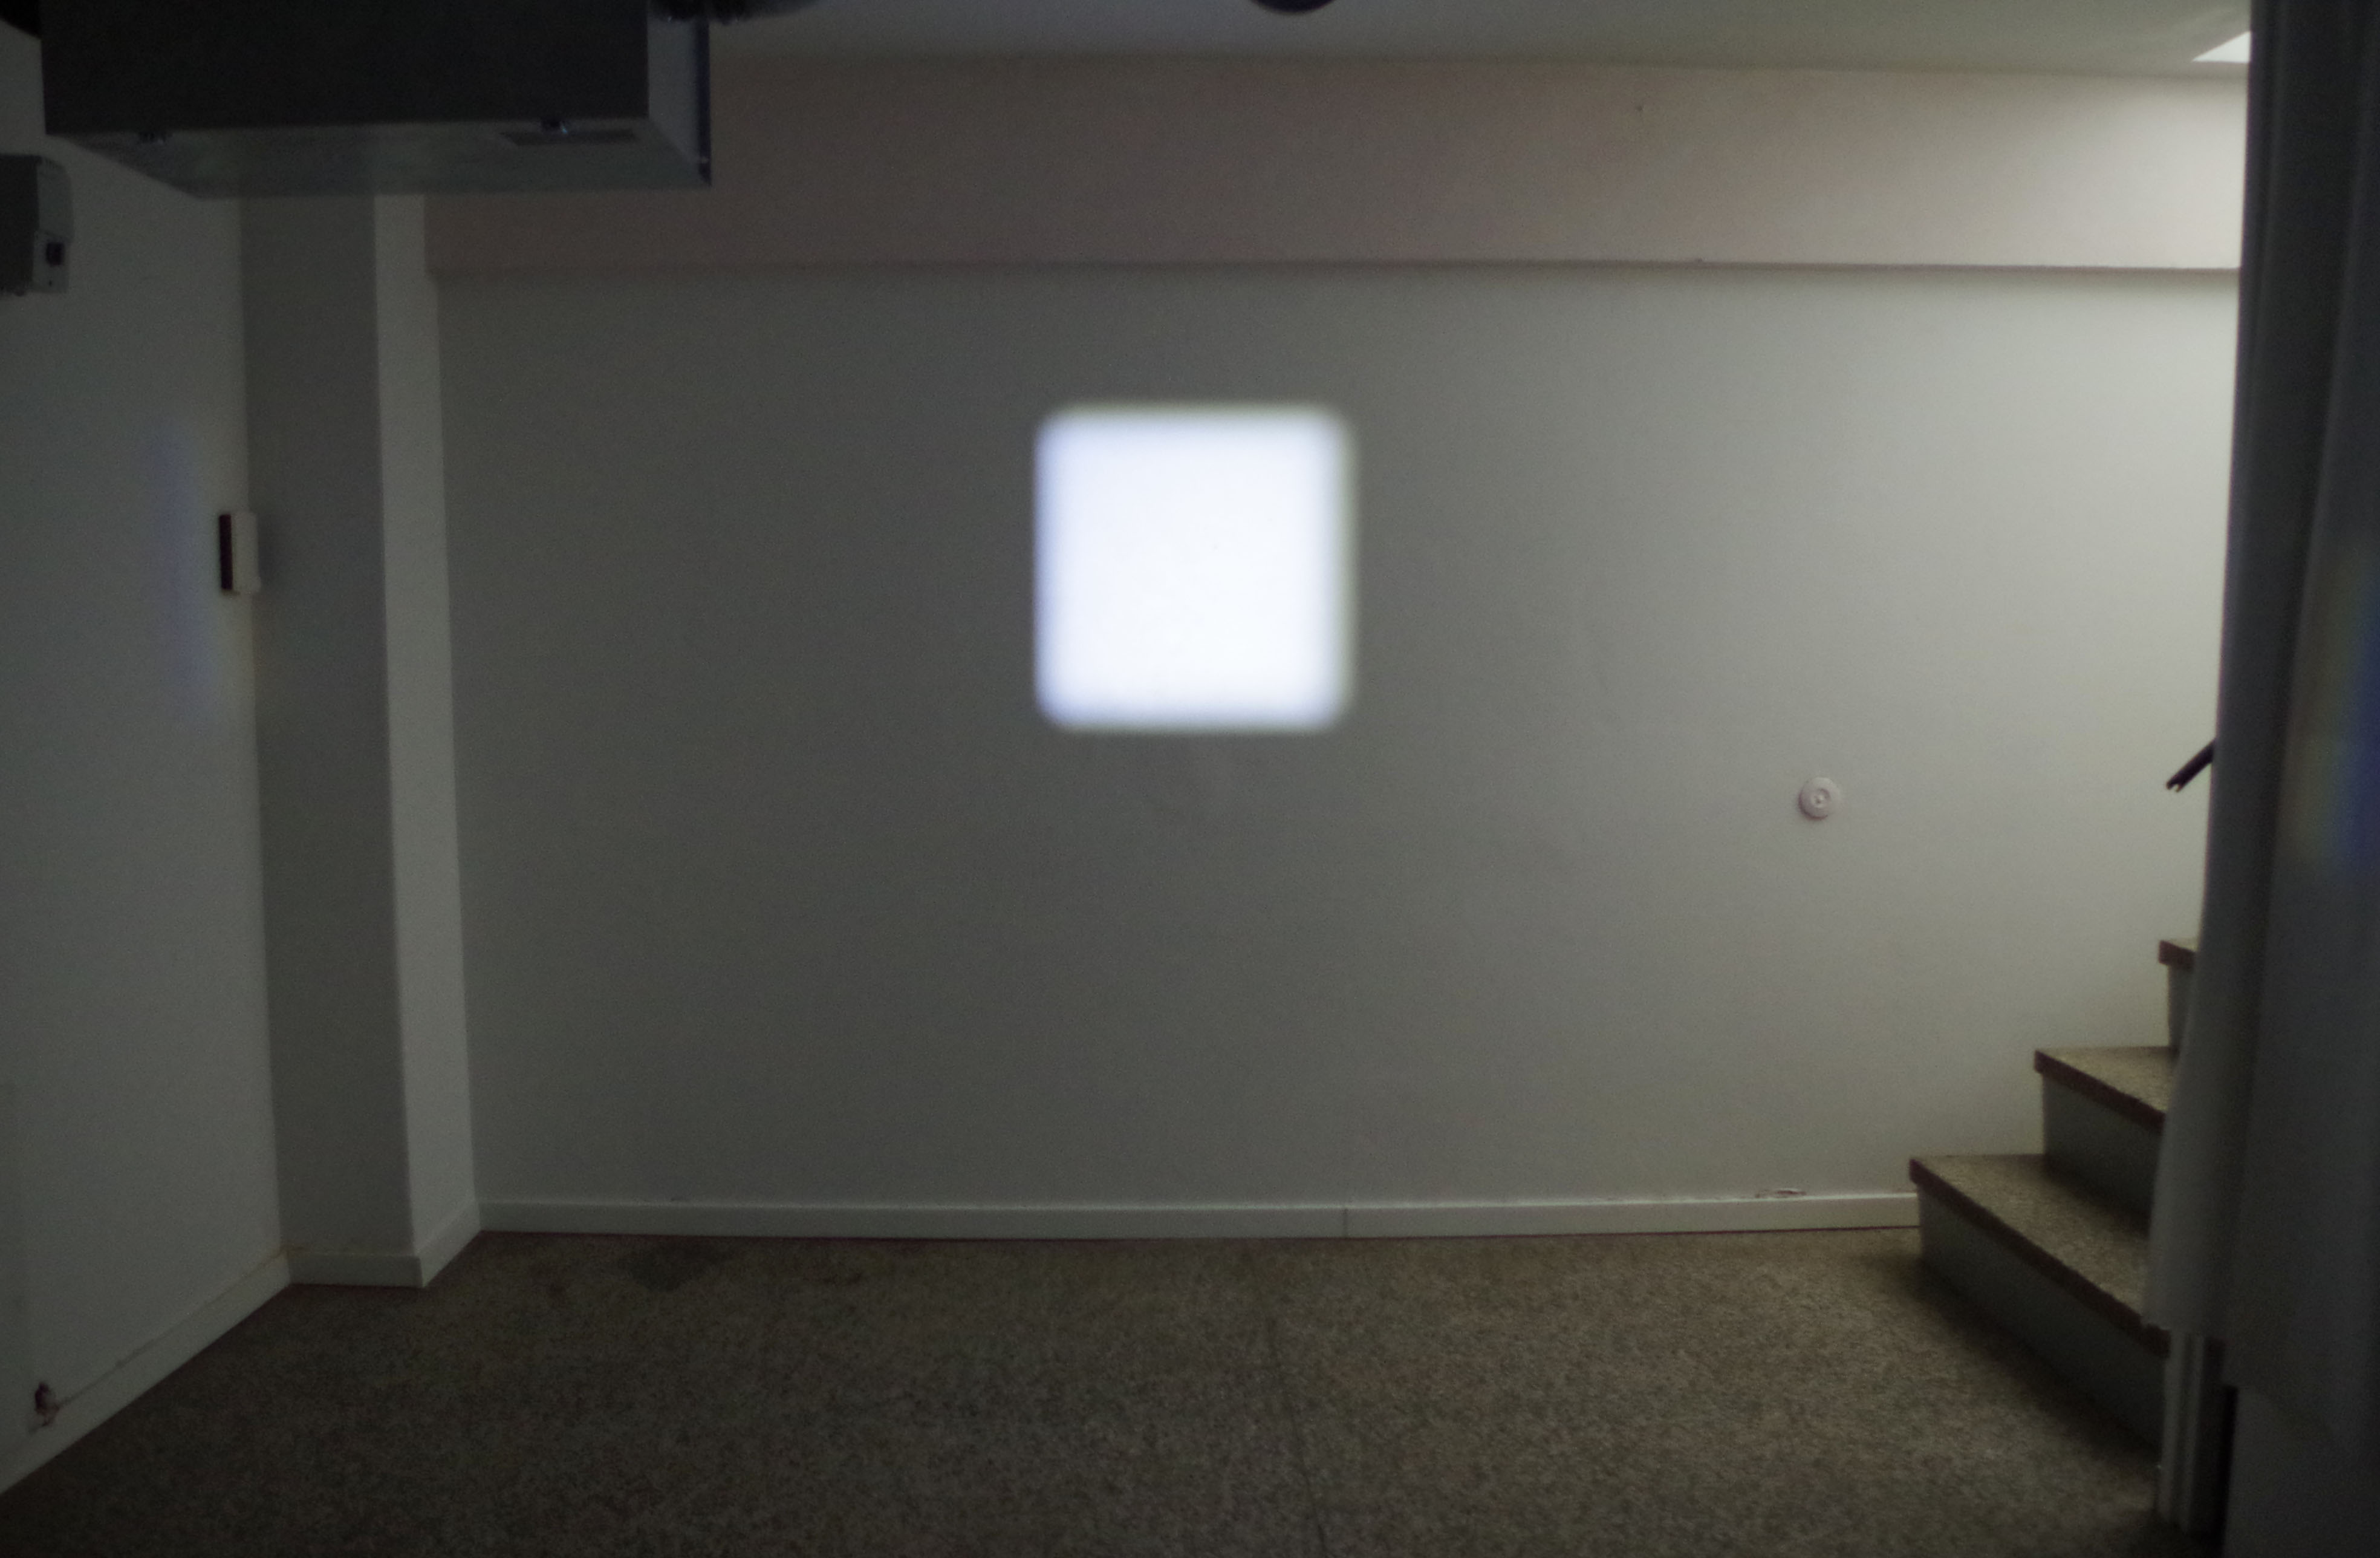 Origine of the image 2, installation, light spot, mirror, different sizes, 2018